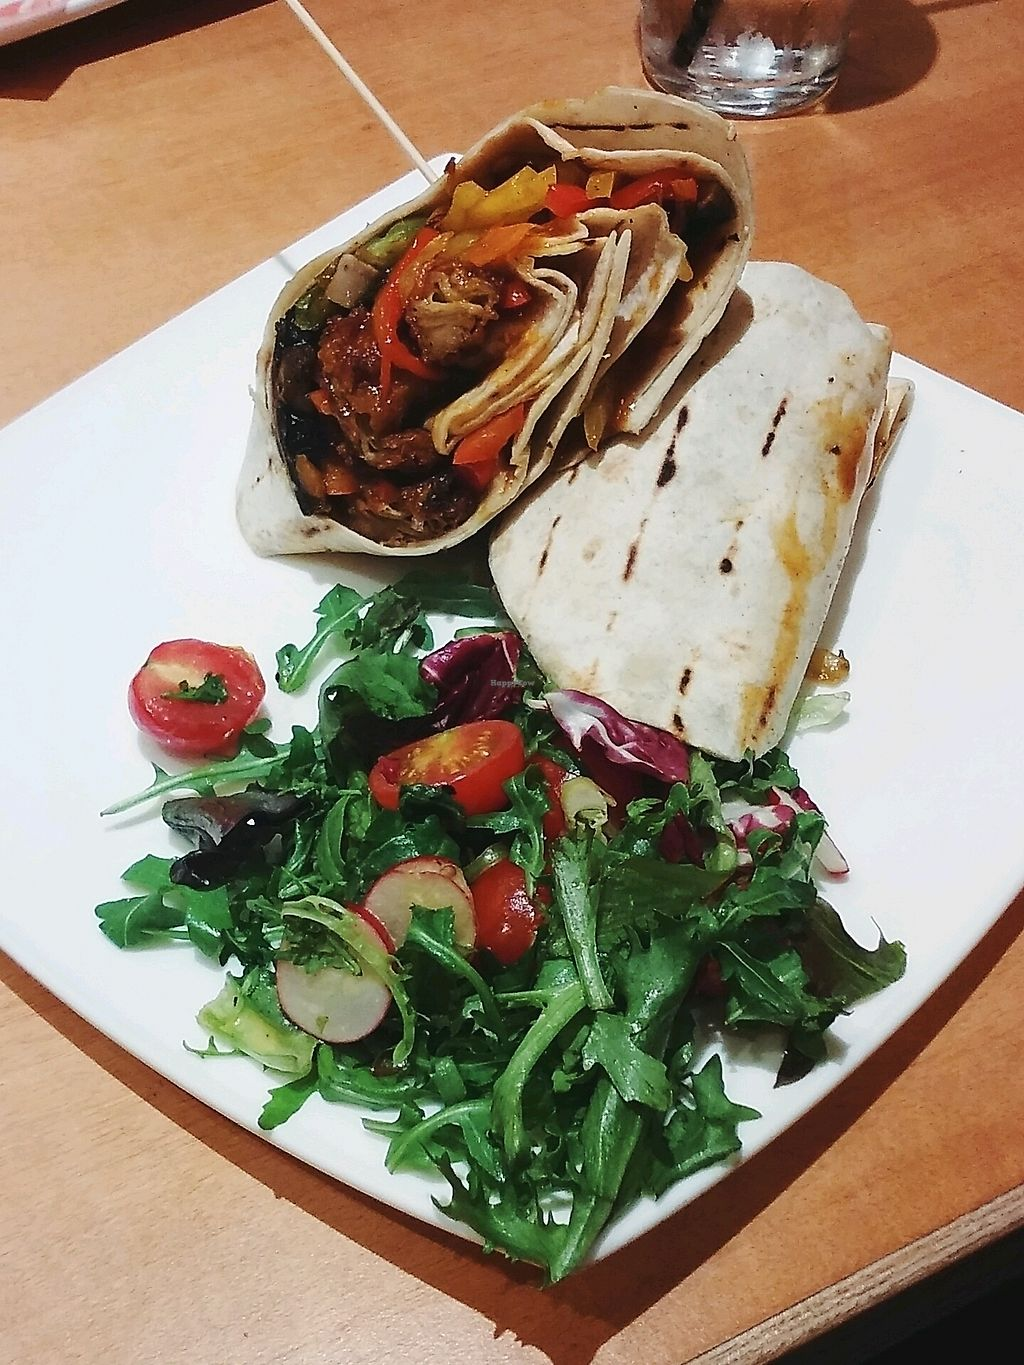 """Photo of Steak Cattle & Roll - Sauchiehall St  by <a href=""""/members/profile/unmond"""">unmond</a> <br/>Vegan Veggie Wrap <br/> October 28, 2017  - <a href='/contact/abuse/image/76751/319559'>Report</a>"""